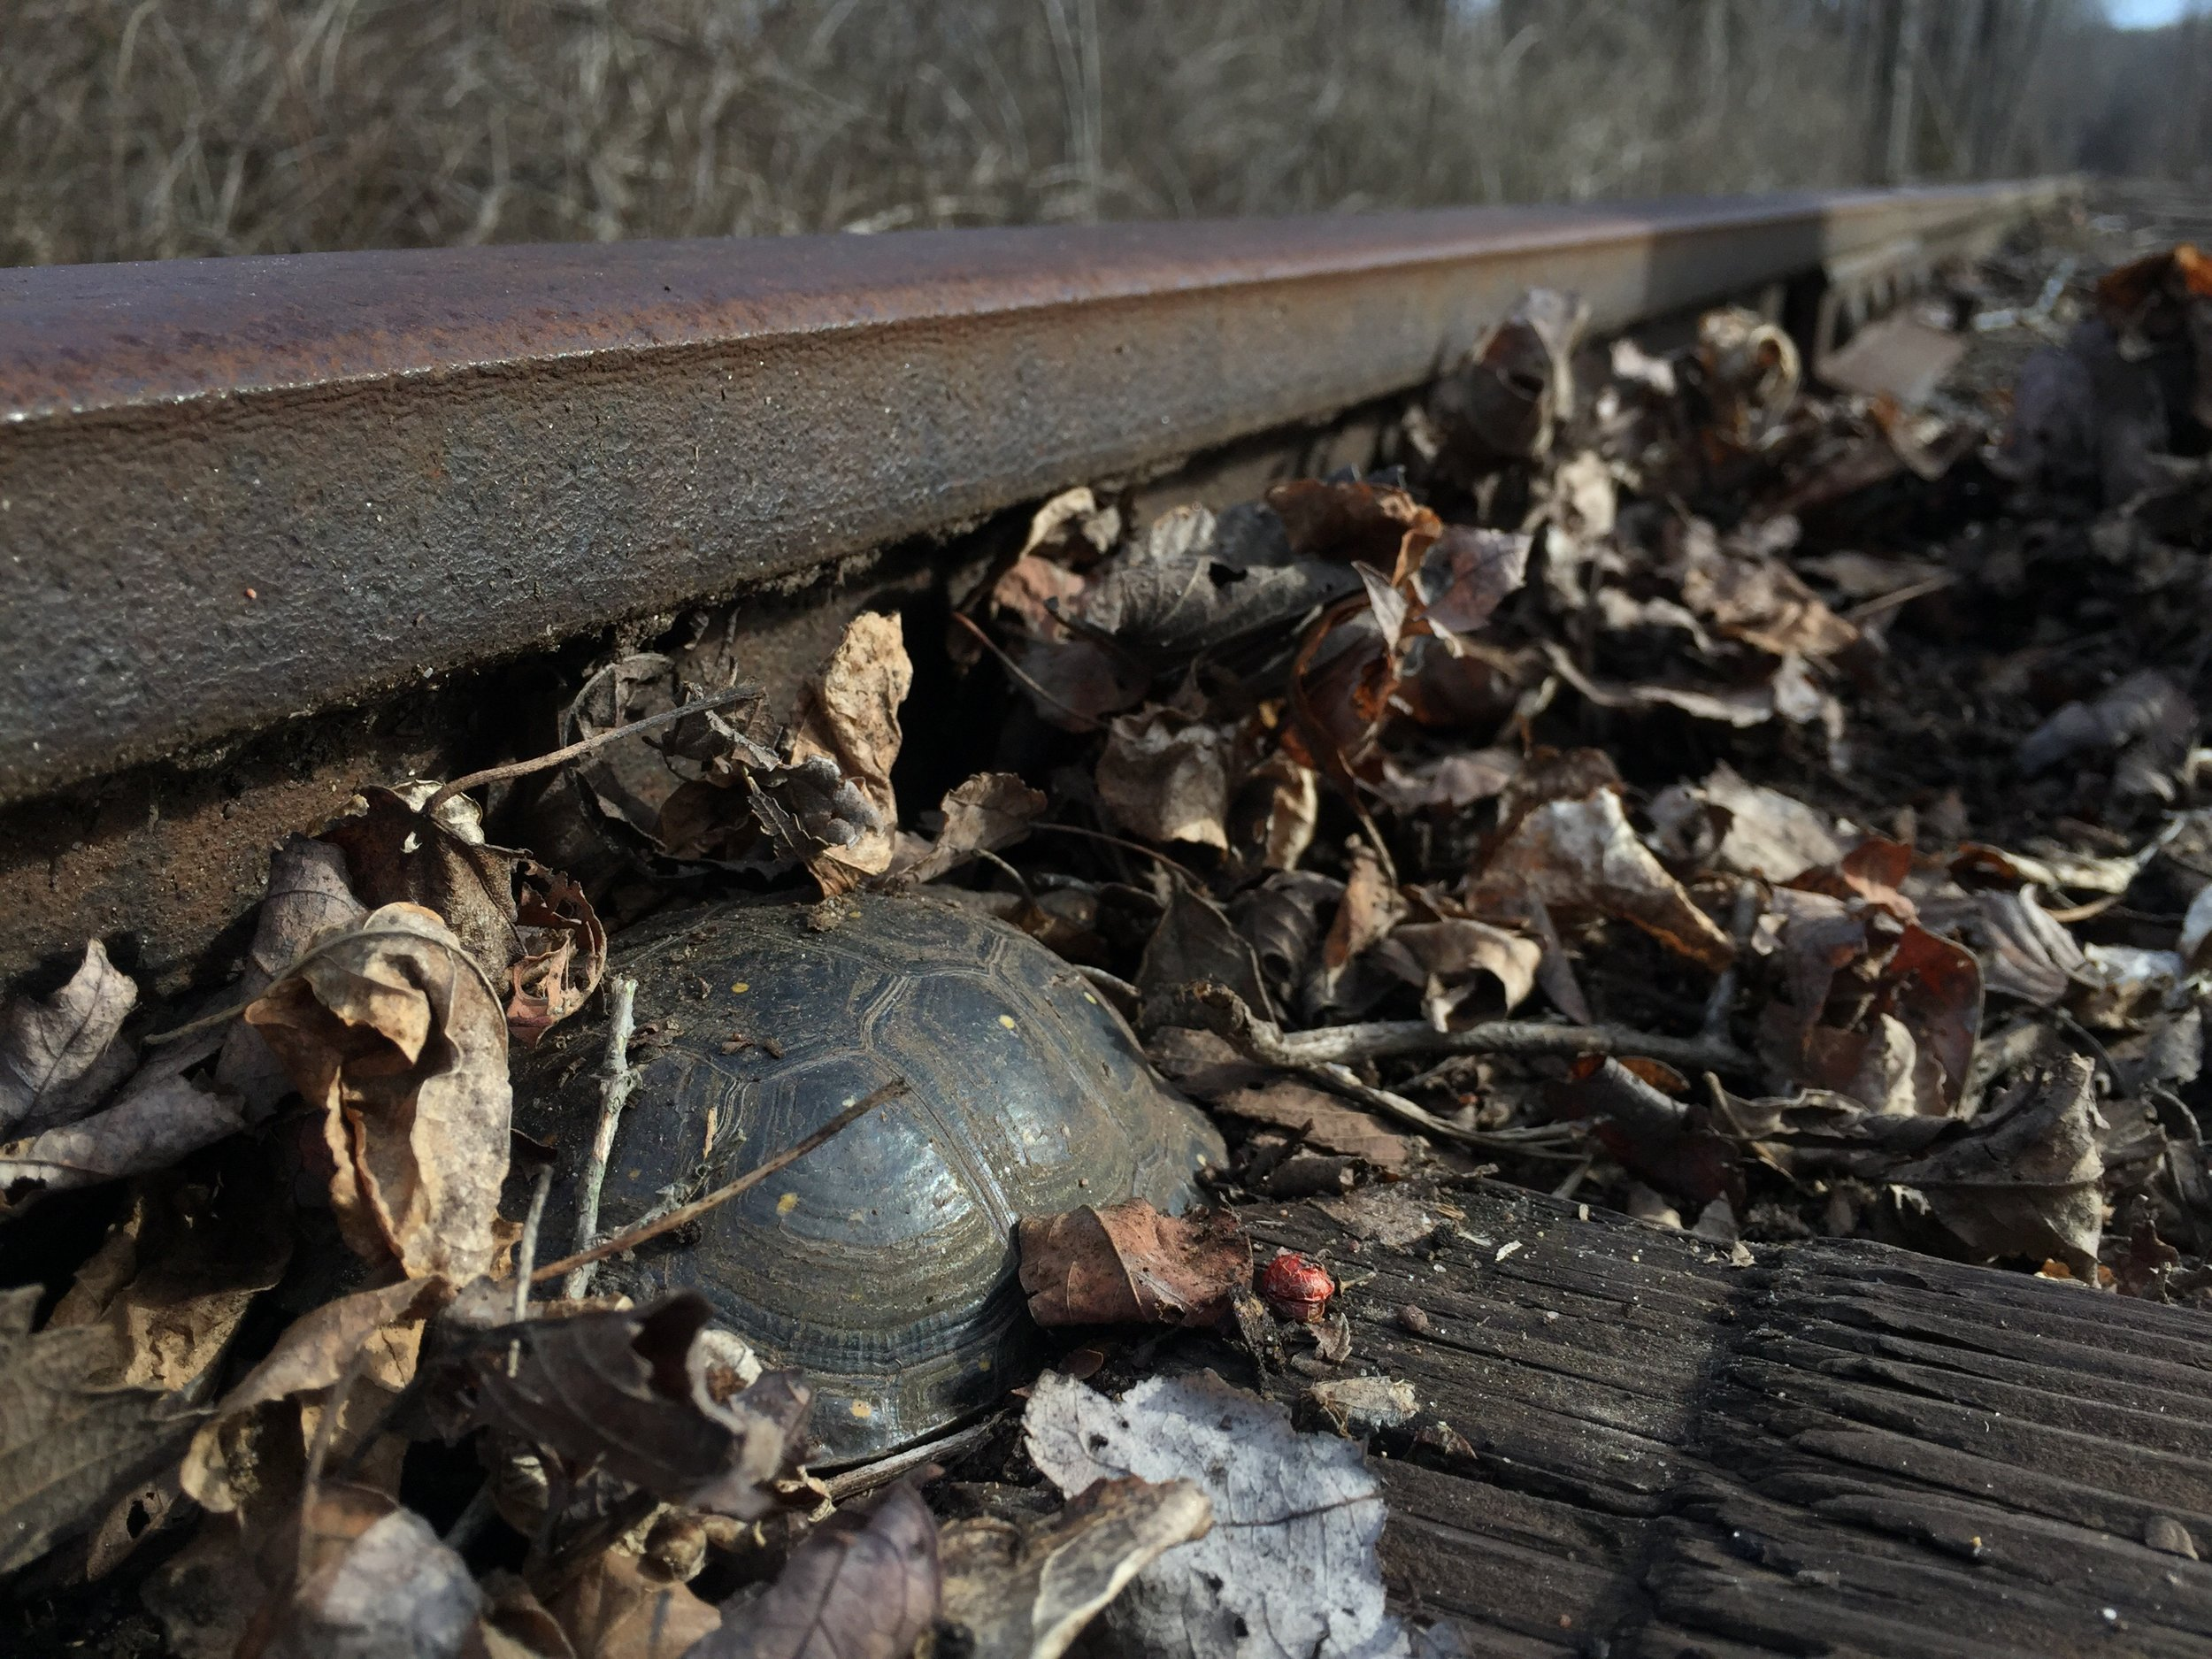 Male spotted turtle ( Clemmys guttata ) resting under leaf pile on abandoned railroad tracks. Photograph by Timothy J. Walsh.